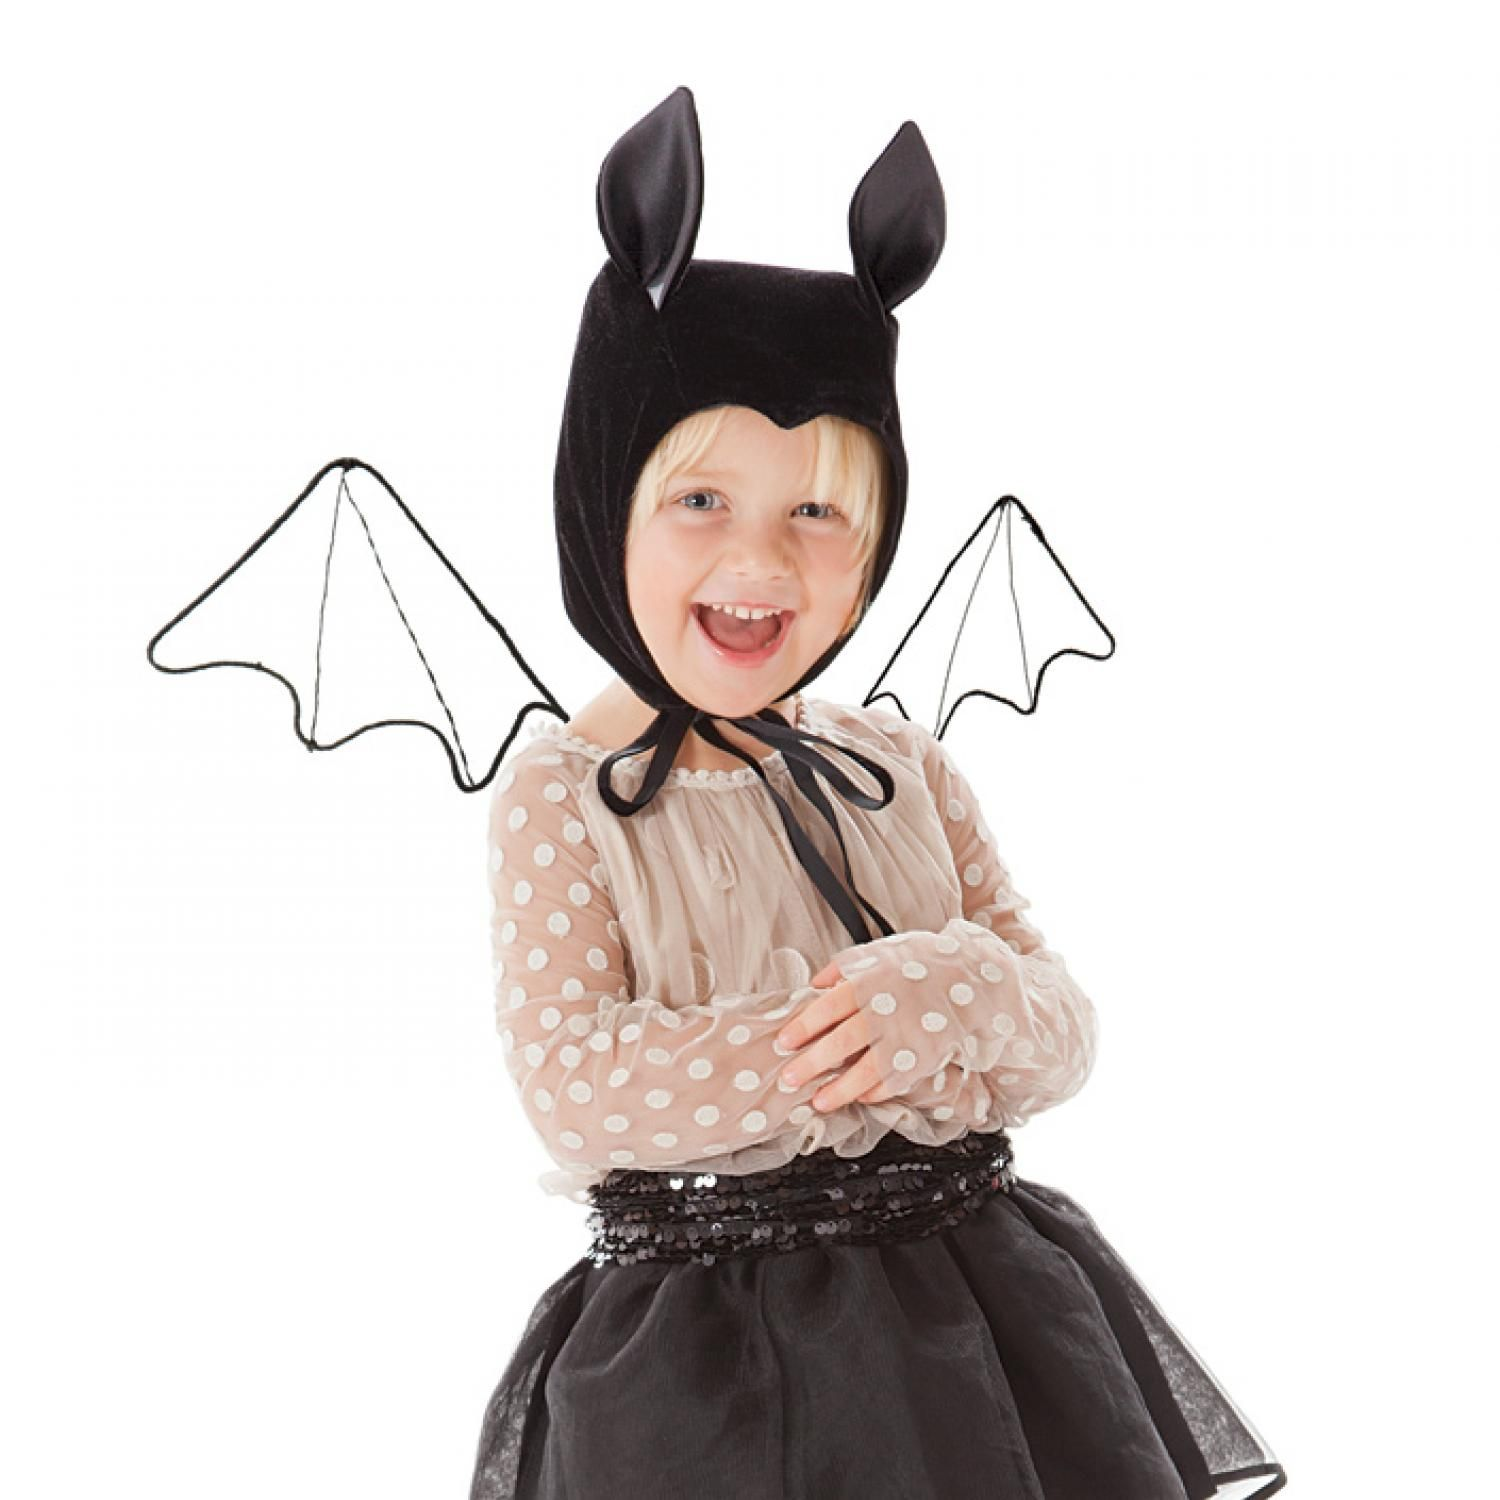 Diy kids halloween costumes homemade costumes halloween costumes diy kids halloween costumes solutioingenieria Gallery